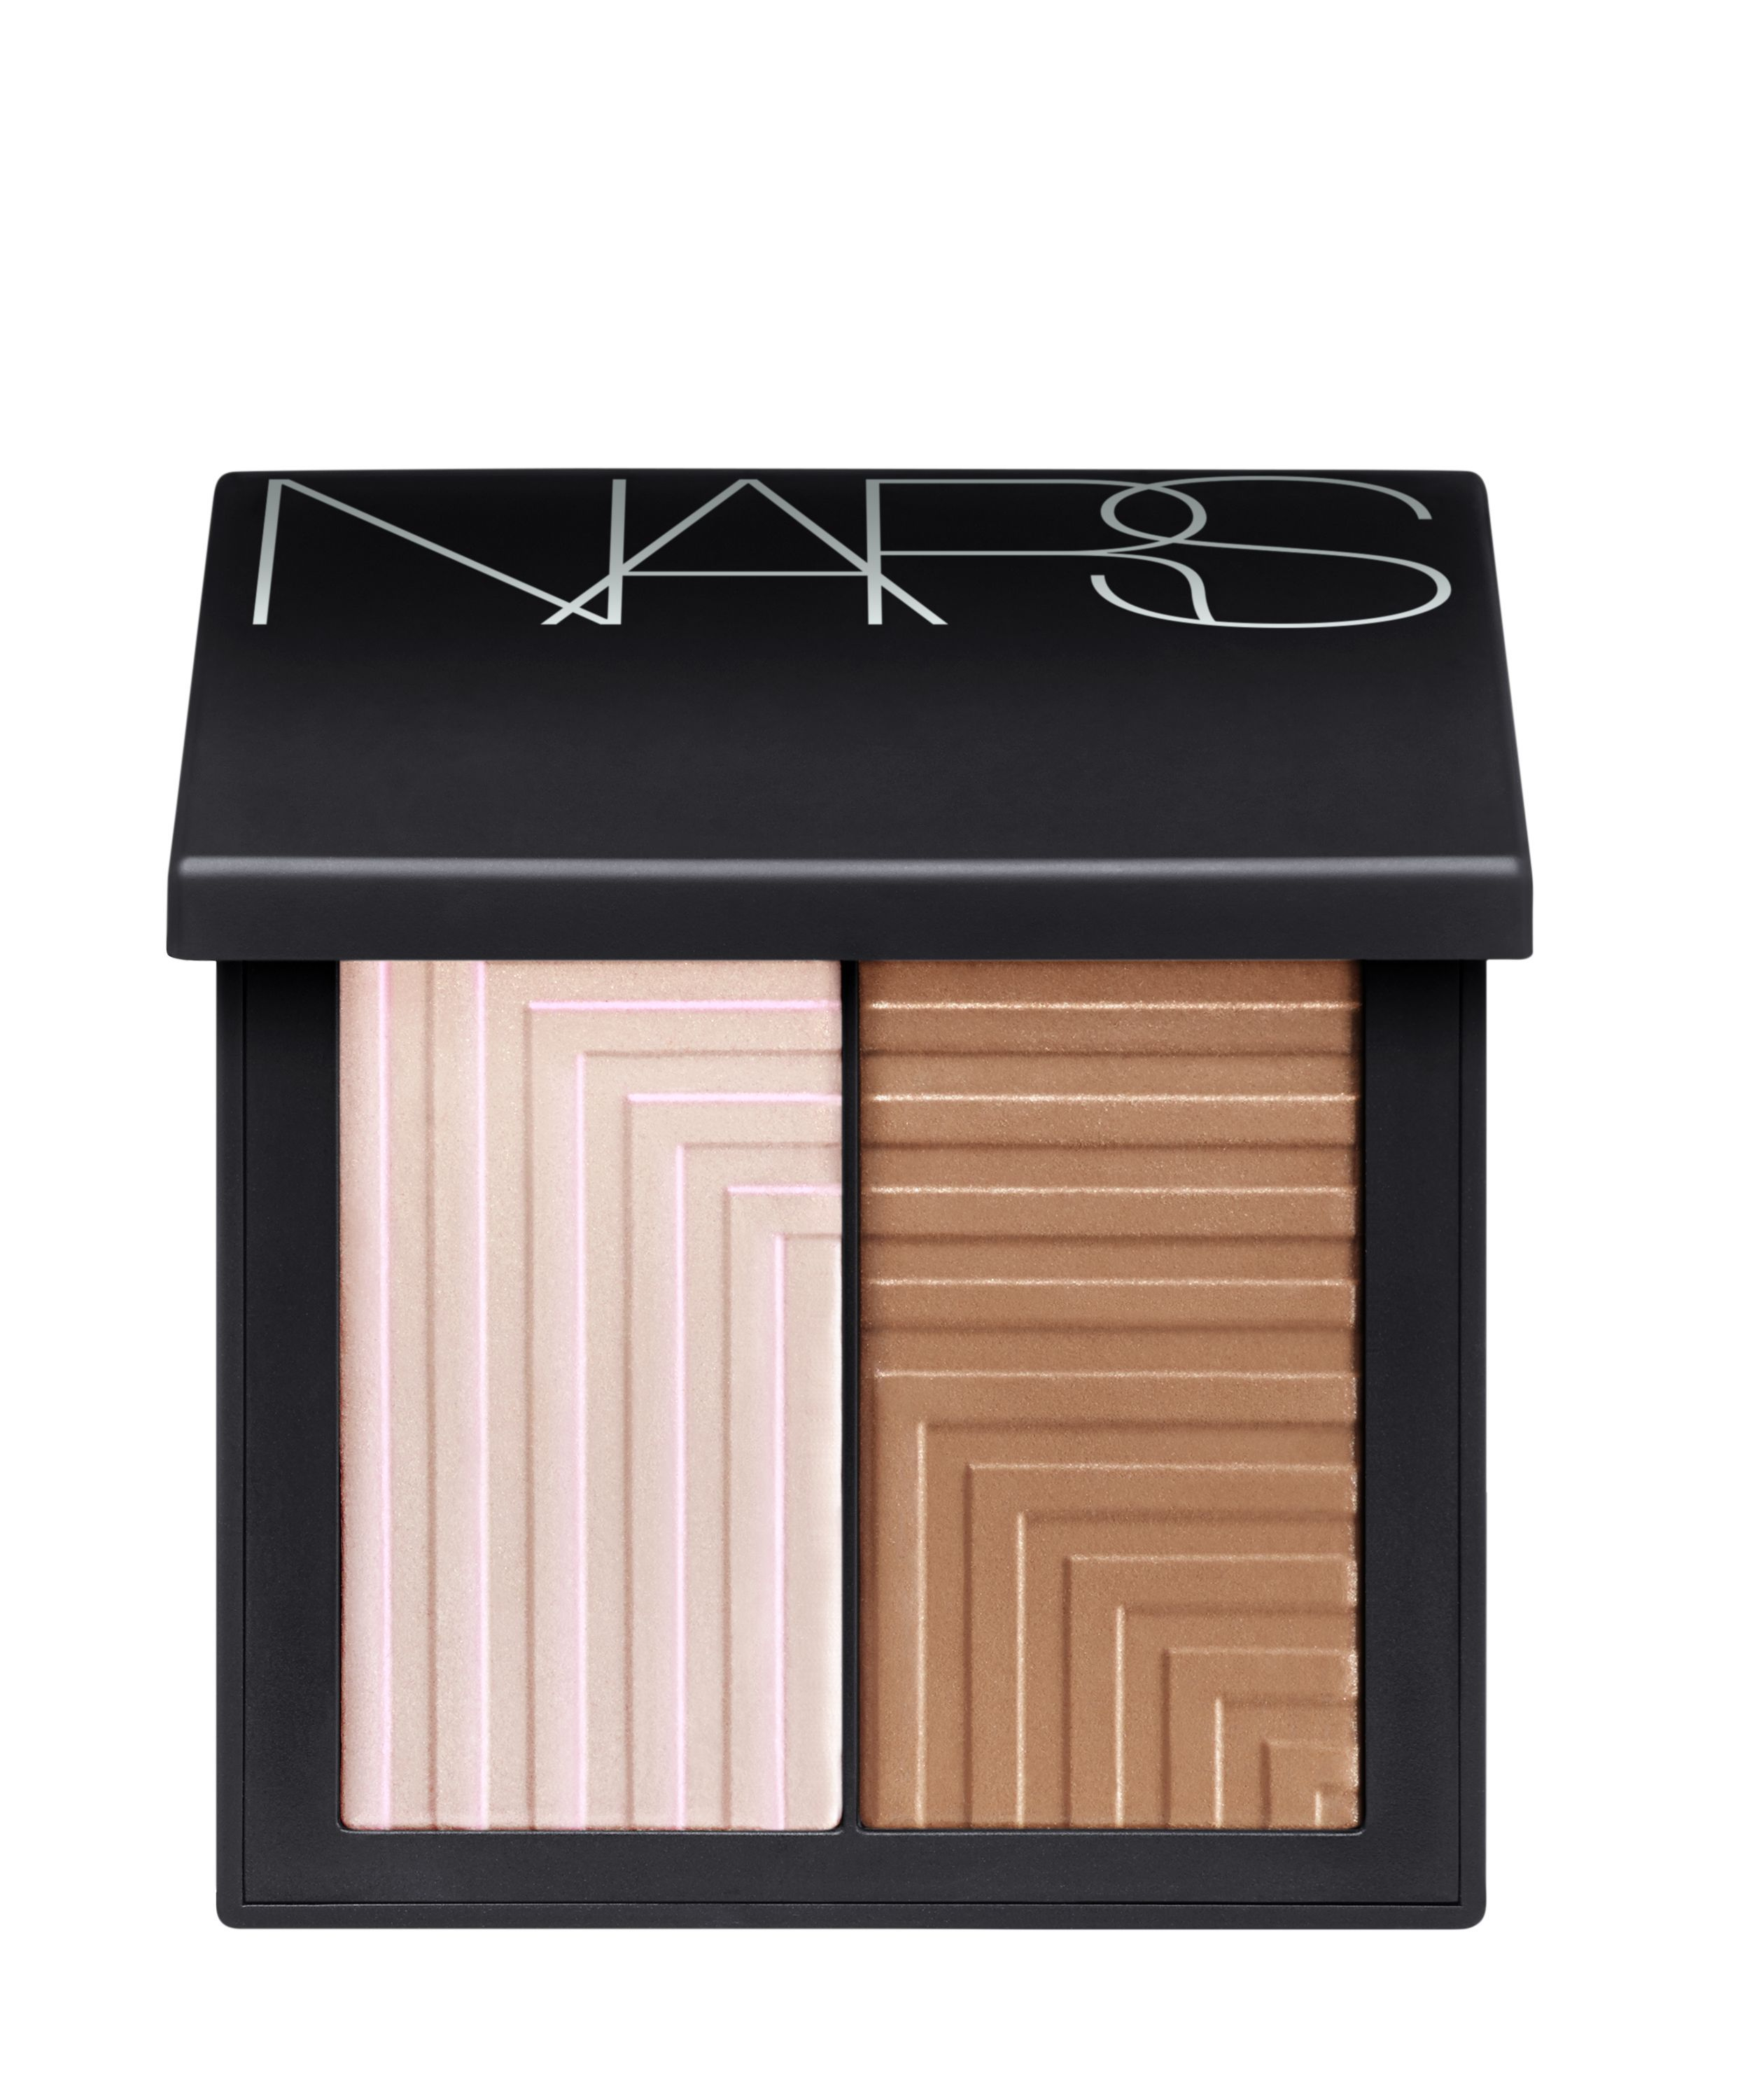 Nars Cosmetics Nars Cosmetics Dual Intensity Blush, Craving